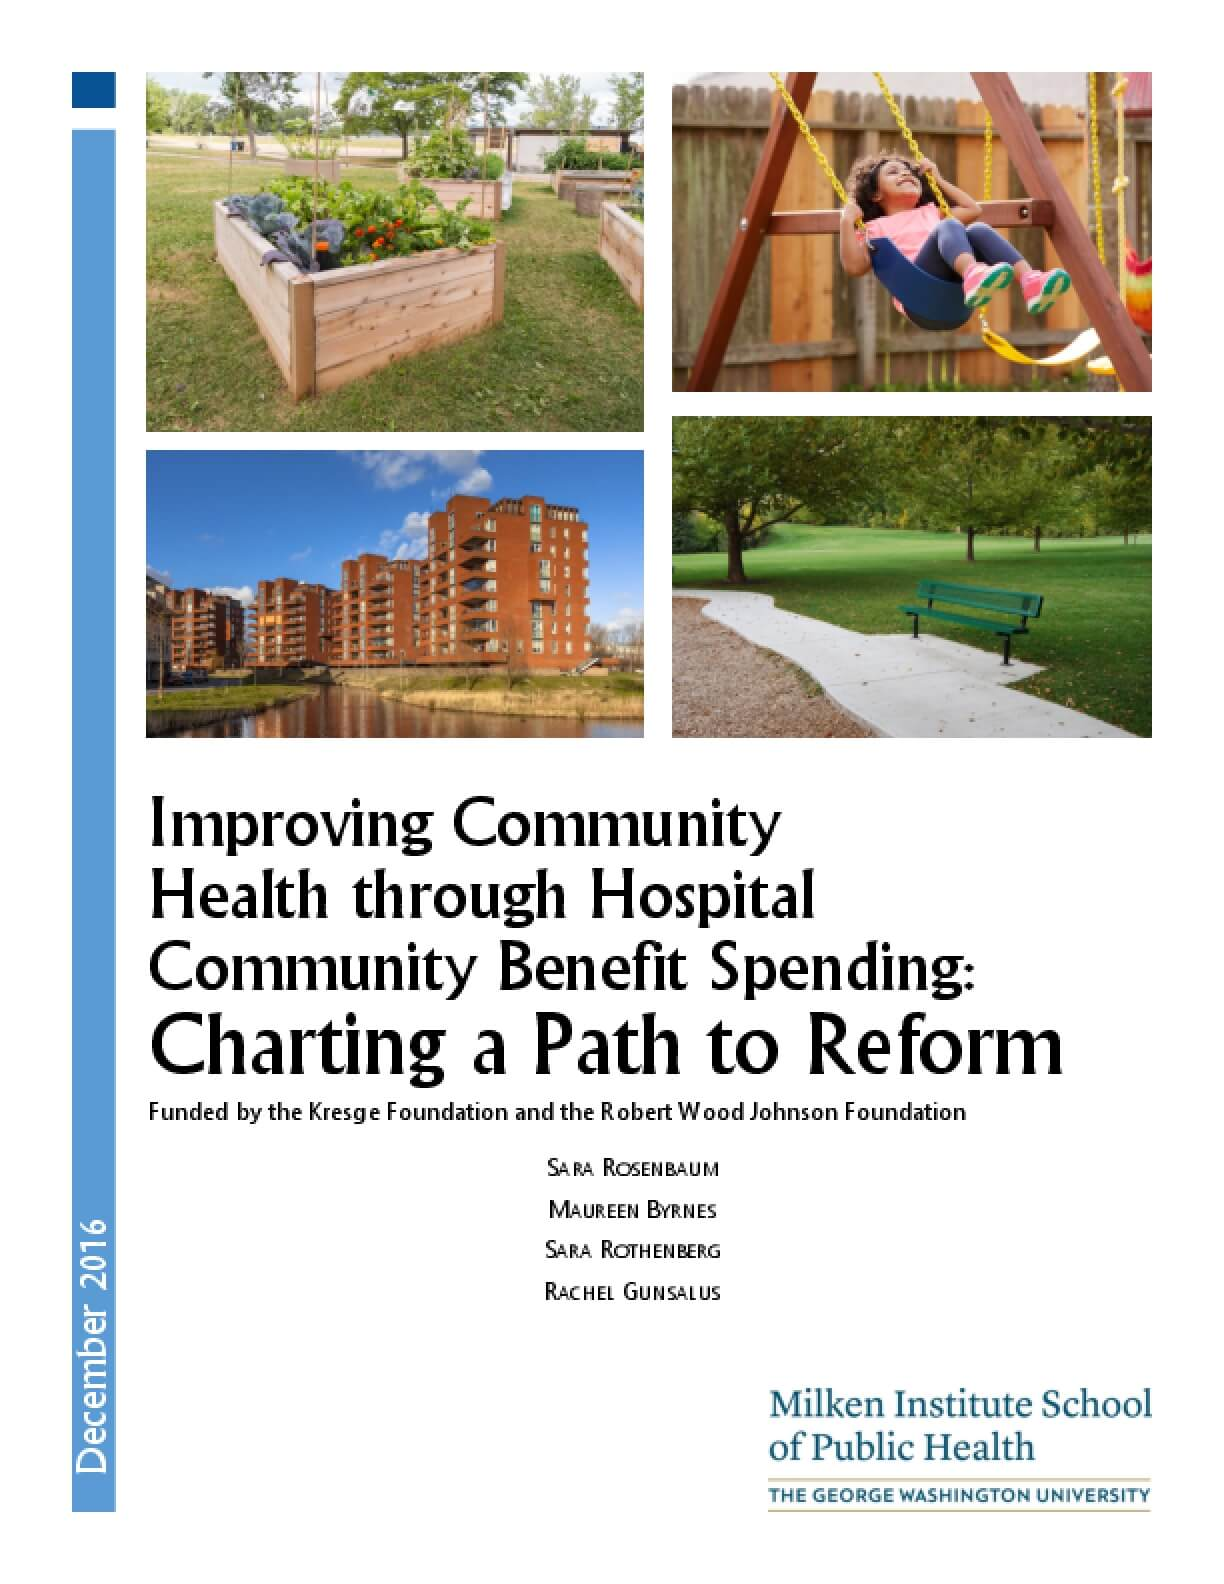 Improving Community Health through Hospital Community Benefit Spending: Charting a Path to Reform